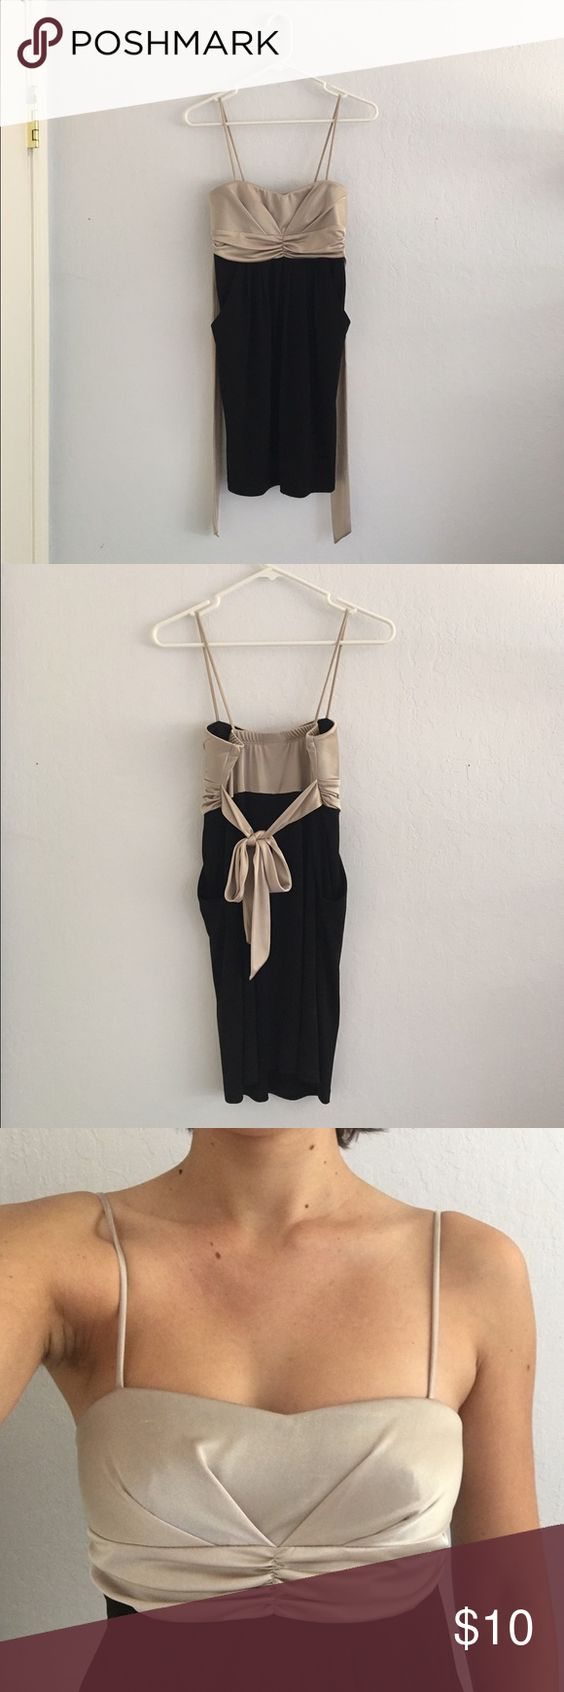 """""""Sweet Storm"""" Black and beige mini dress Size small dress, slightly formal, only worn once. This dress is very comfortable and has a supportive bust. It is a little short but I am 5'11"""" and it reaches down to mid-thigh. Spandex polyester blend. Also, pockets! Sweet Storm Dresses Mini"""